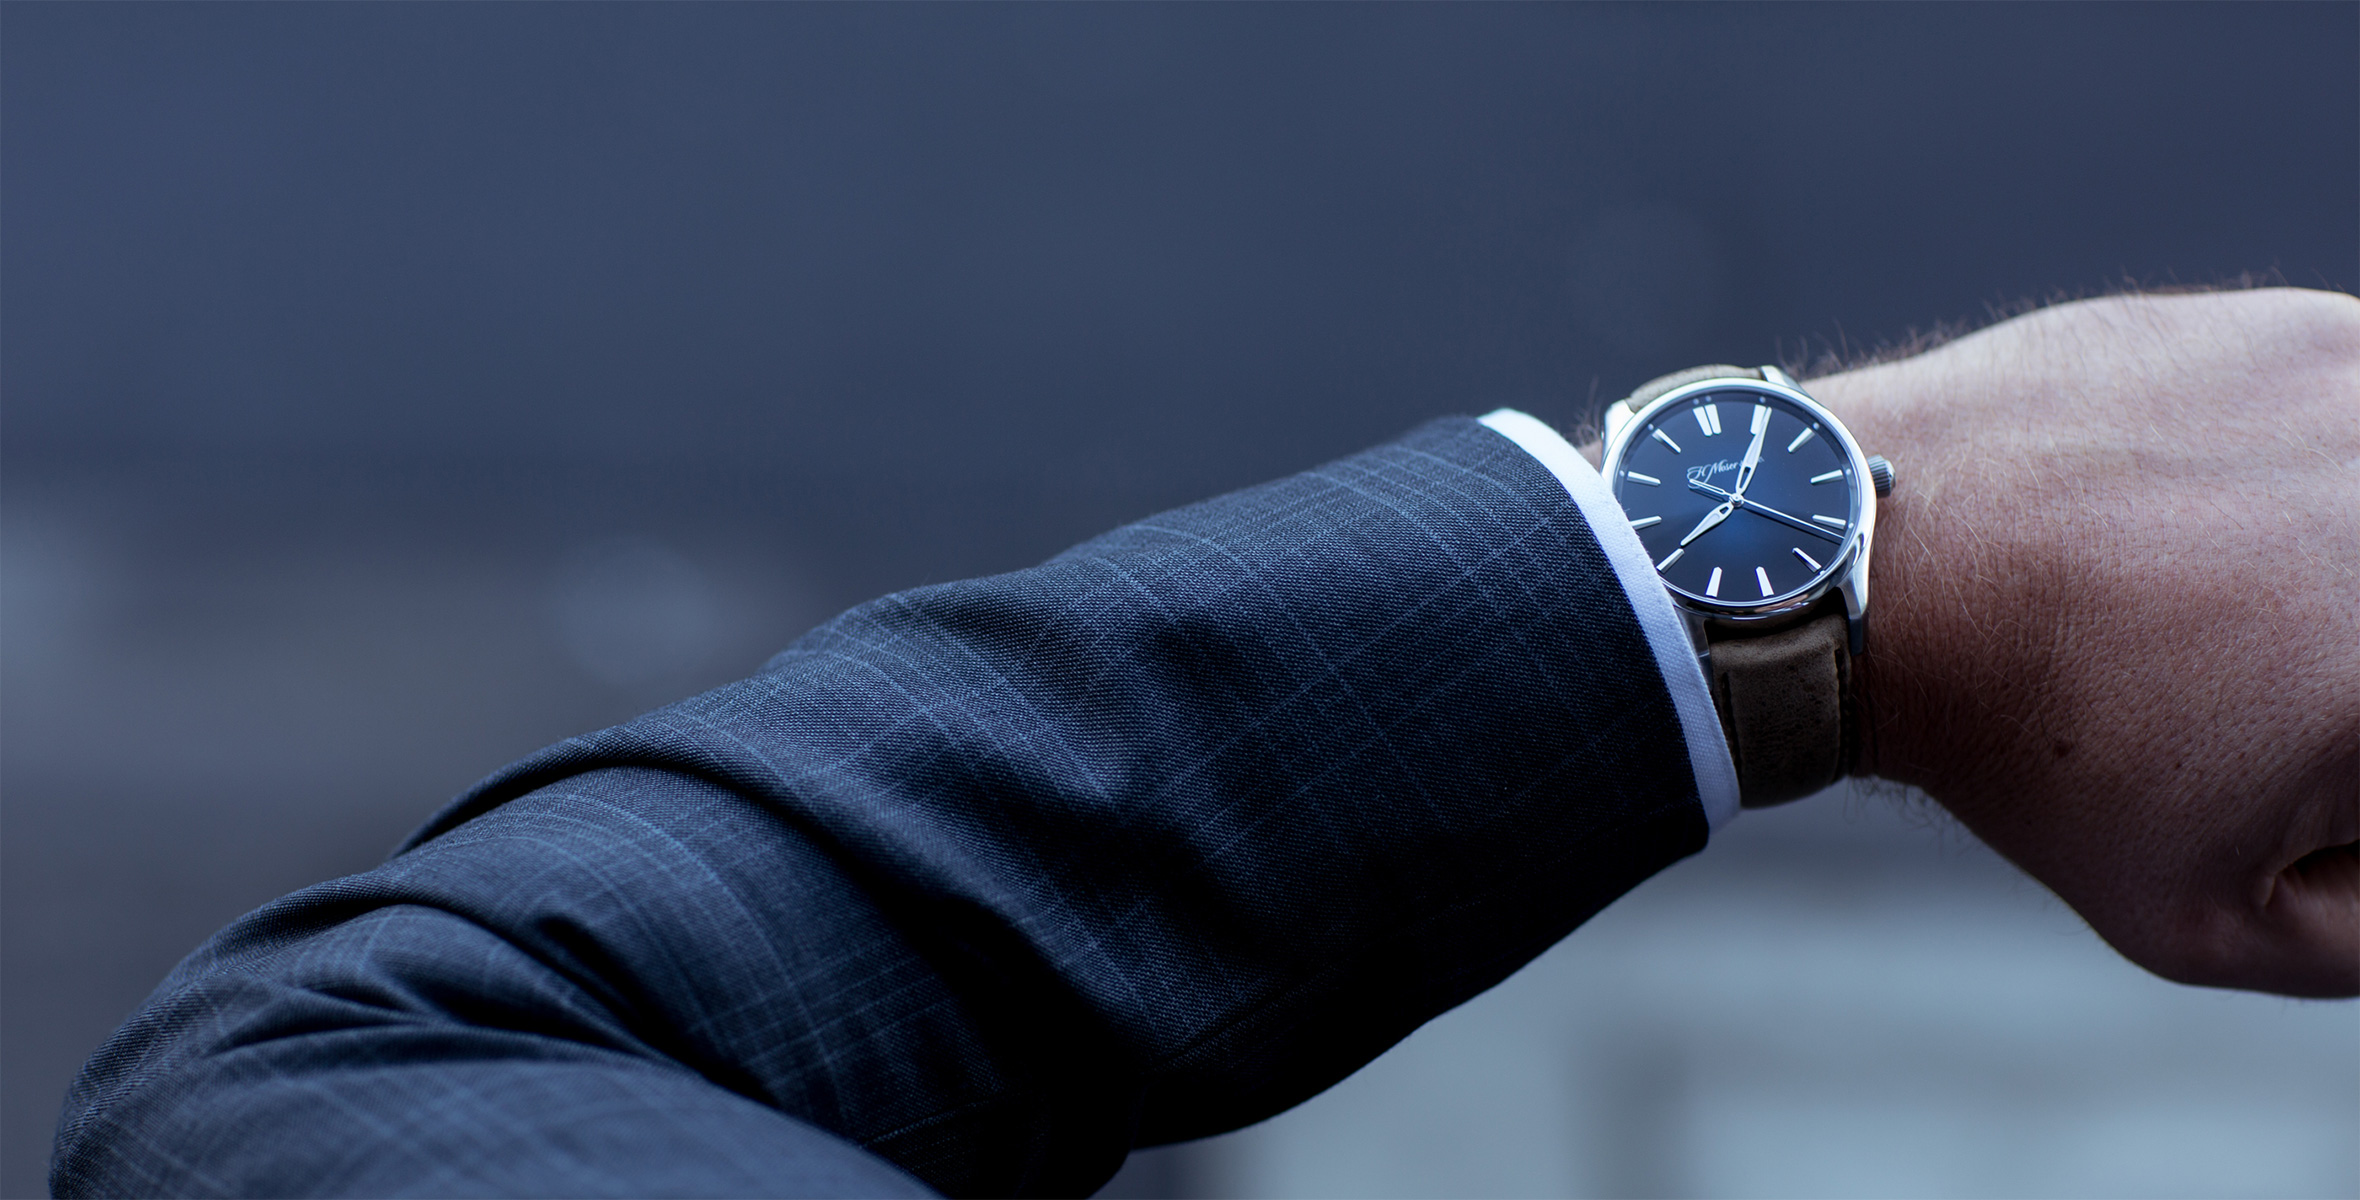 MY MONTH WITH: The H. Moser & Cie Pioneer (and why I bought one)